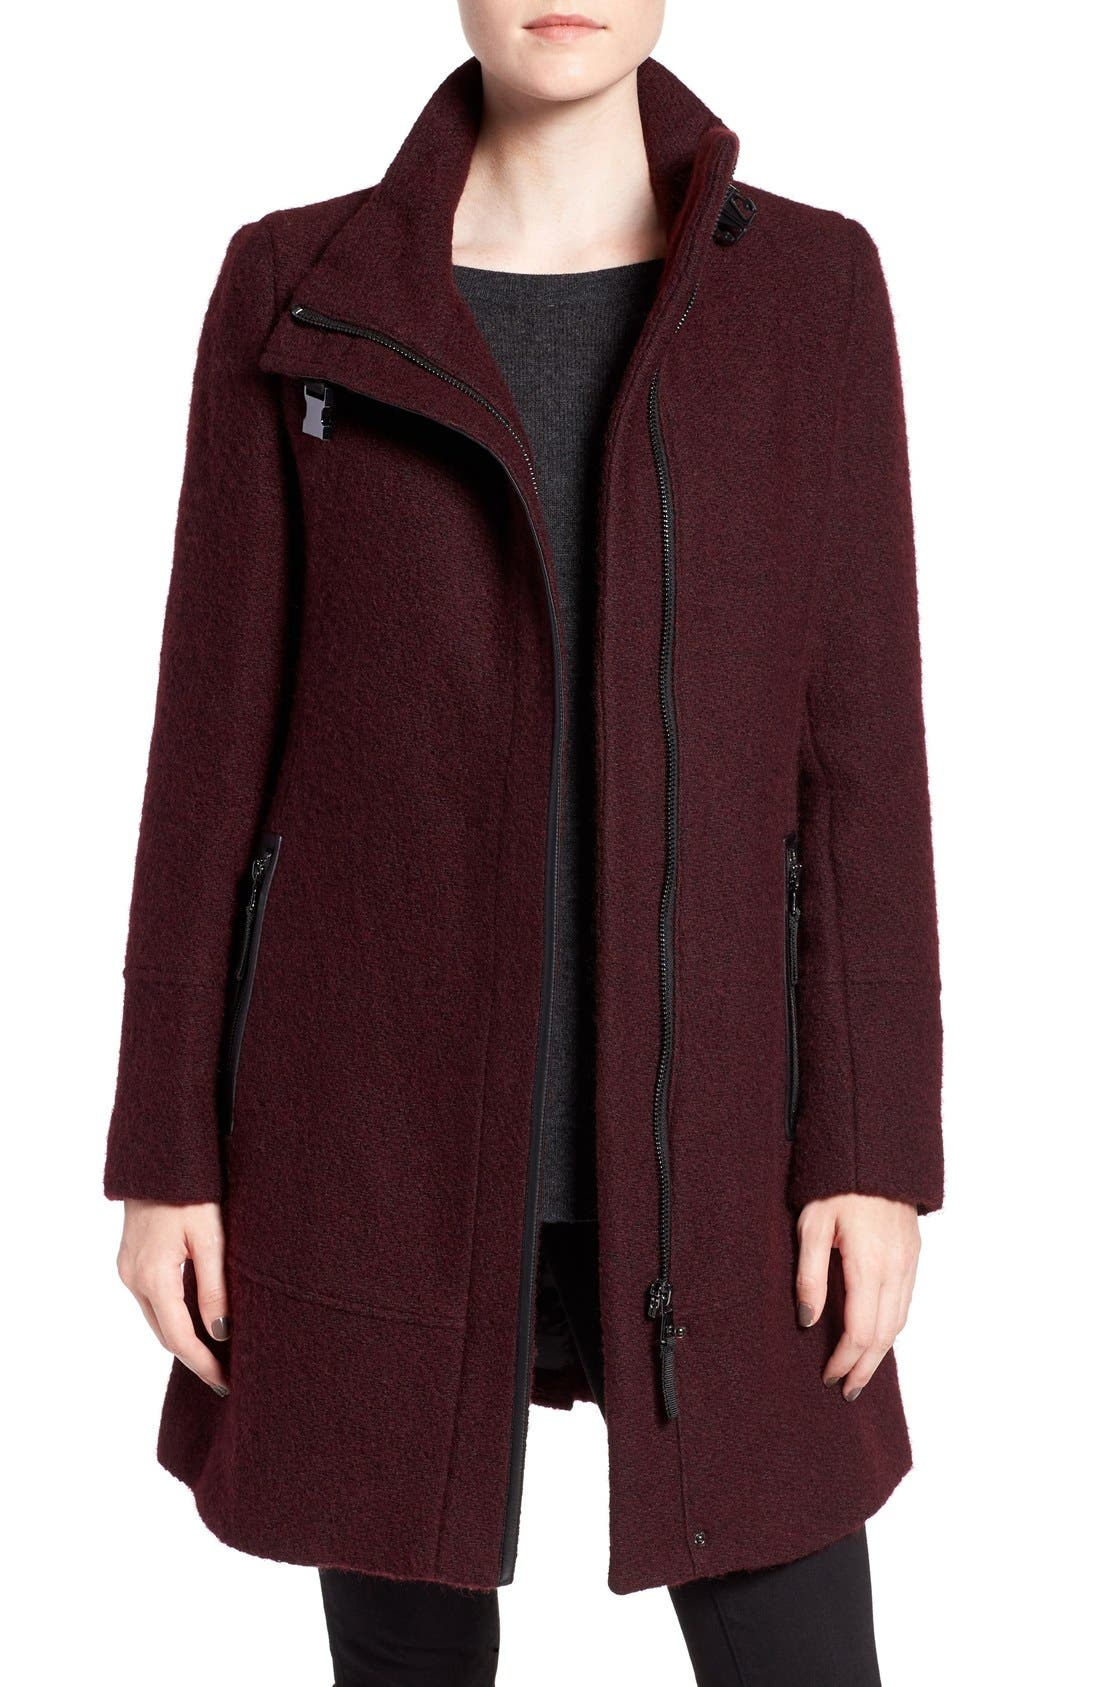 Alternate Image 1 Selected - Calvin Klein Wool Blend Bouclé Walking Jacket (Regular & Petite)